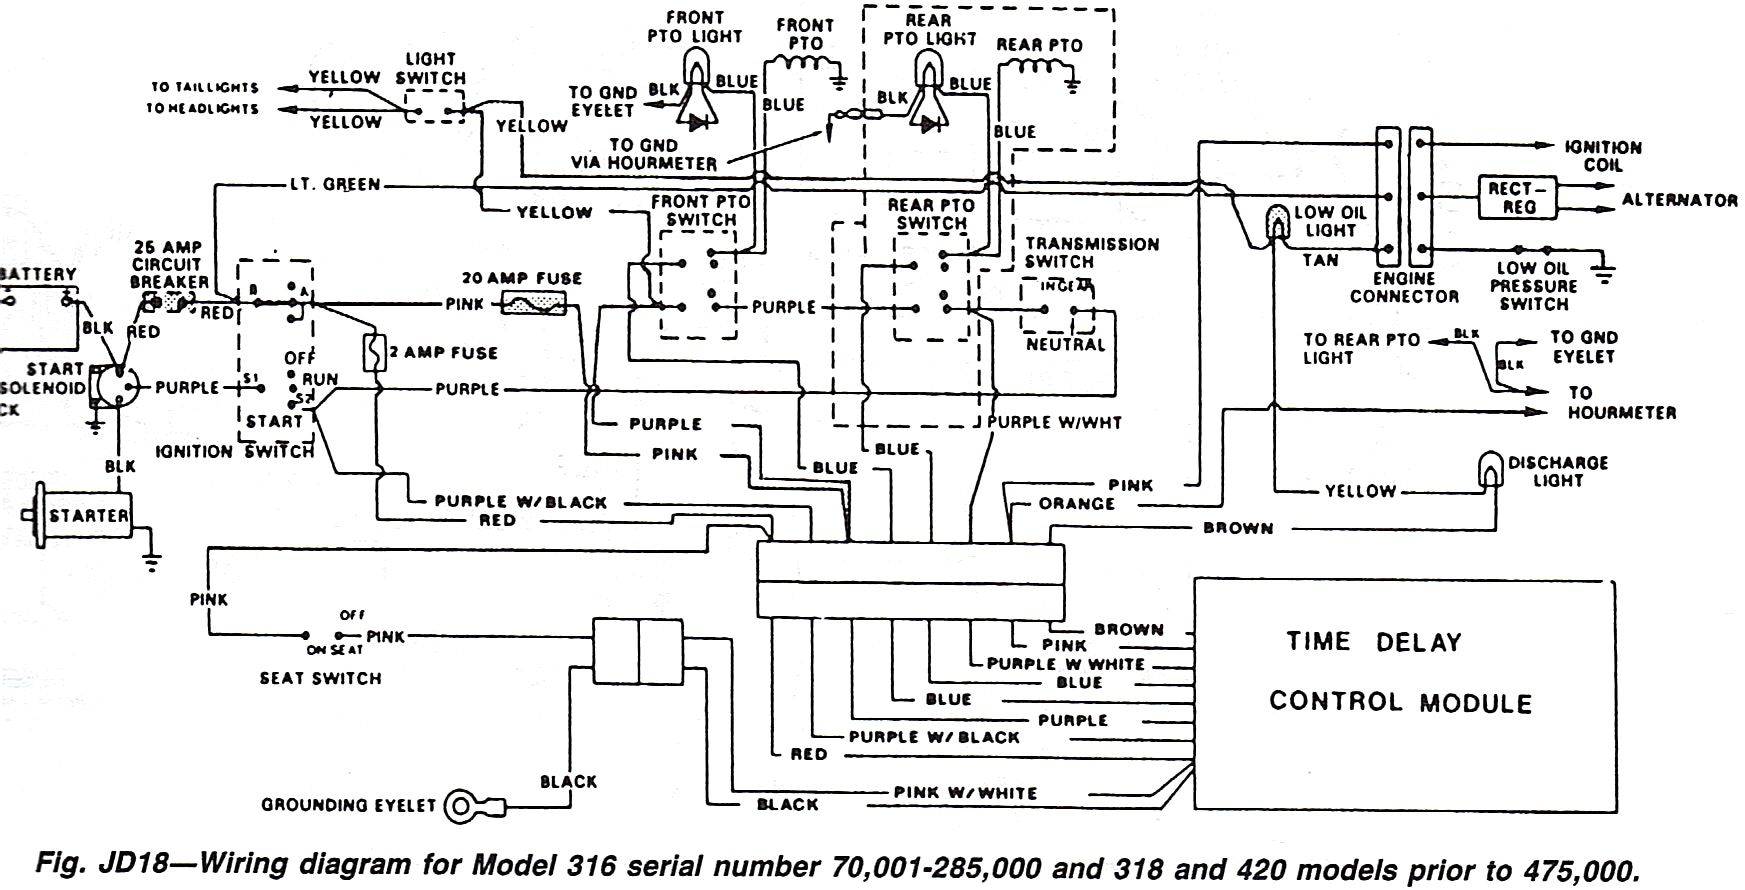 John Deere Cab Light Wiring Diagram - Wiring Diagrams Log on